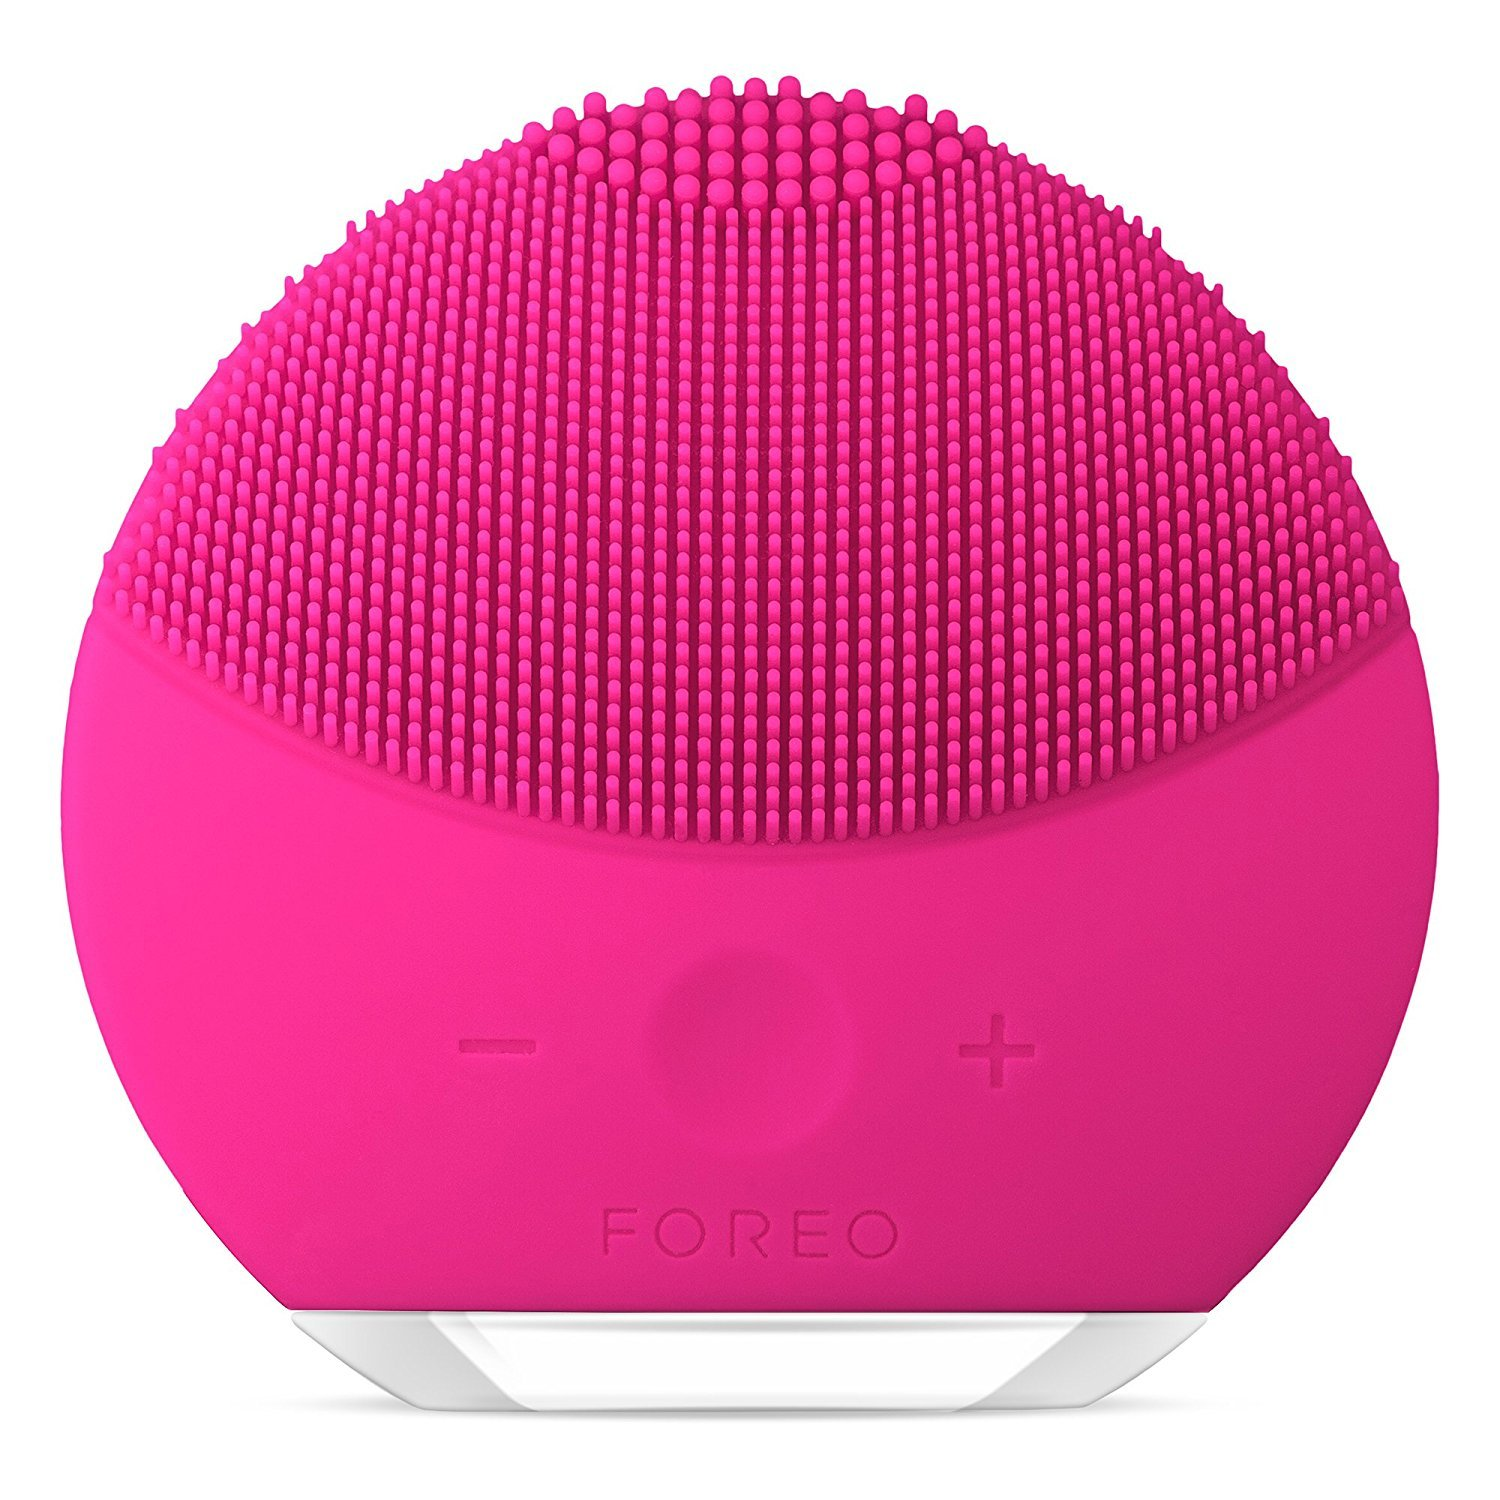 FOREO LUNA mini 2 Facial Cleansing Brush, Gentle Exfoliation and Sonic Cleansing for All Skin Types, Aquamarine (並行輸入品) B07D5YQLCW Fuchsia One Size